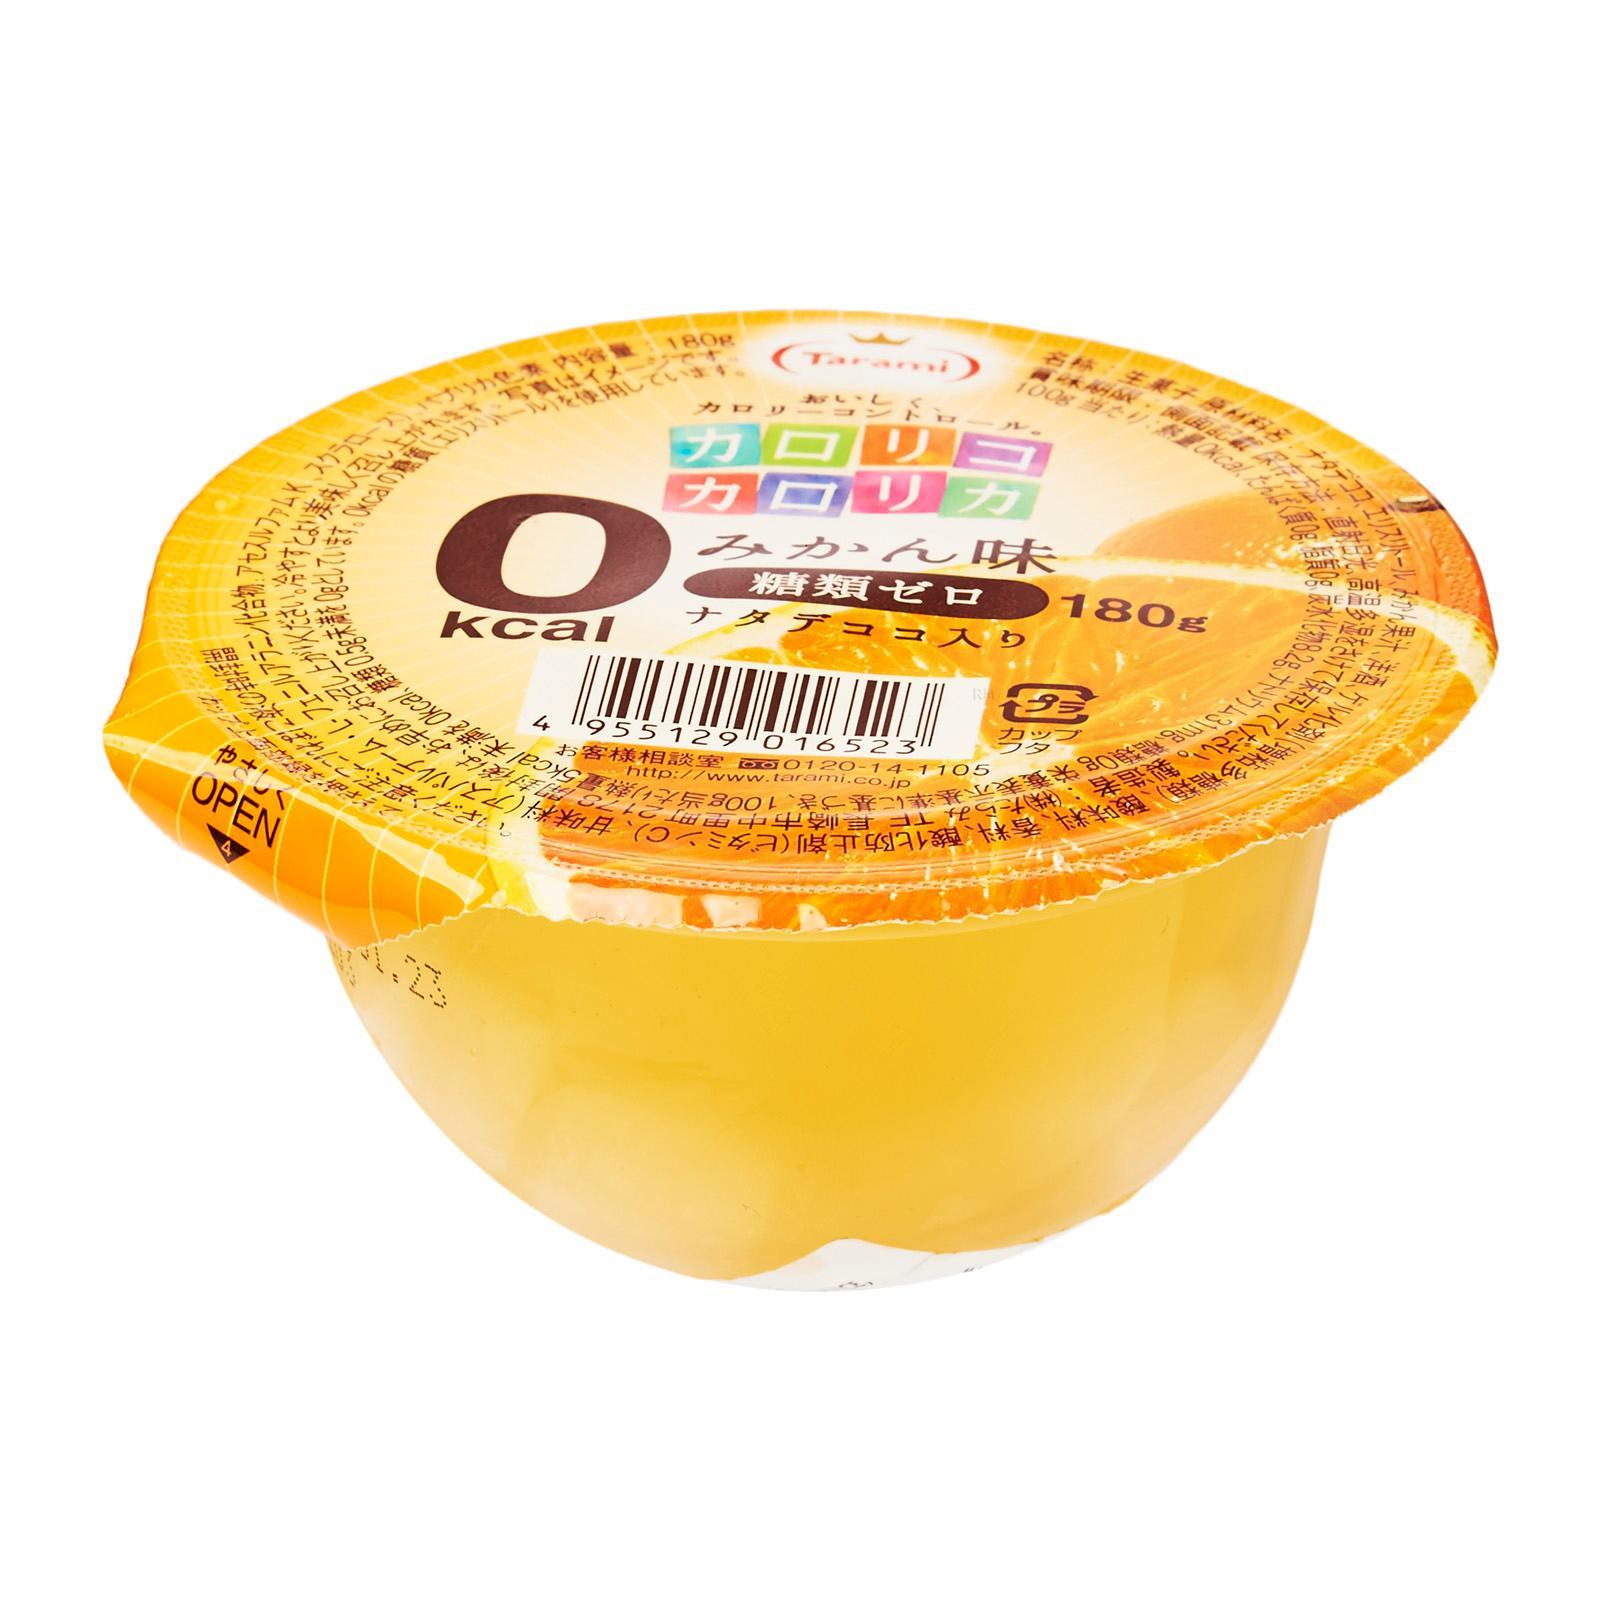 Tarami 0 Kcal Series Mikan Orange Jelly By Redmart.